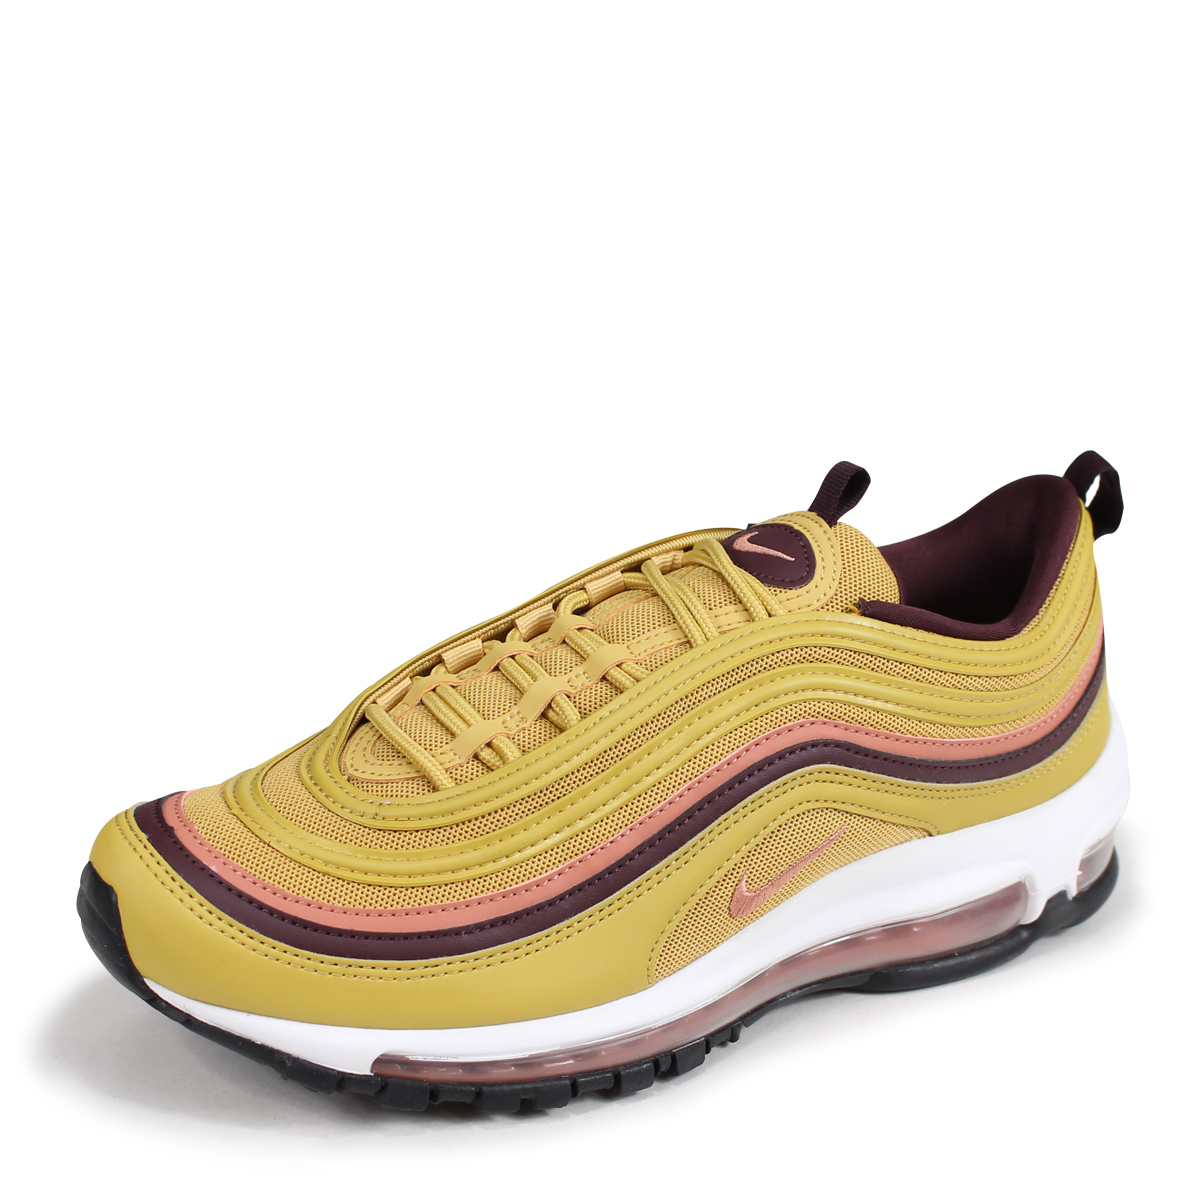 NIKE WMNS AIR MAX 97 Kie Ney AMAX 97 lady's men's sneakers 921,733 700 gold [188]